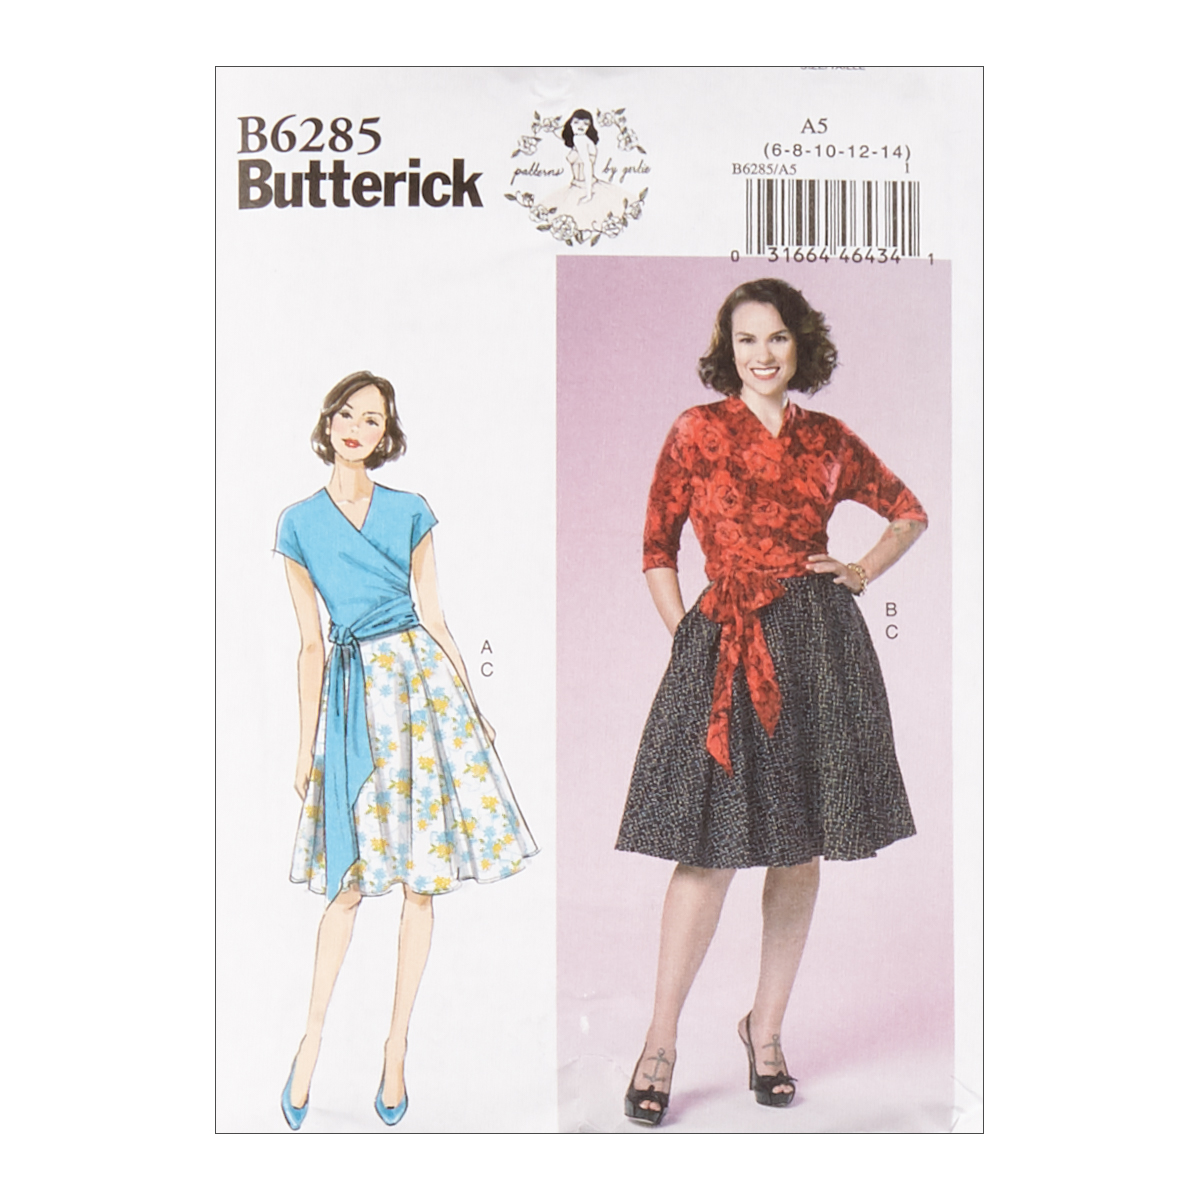 1950s Sewing Patterns | Dresses, Skirts, Tops, Mens Butterick B6285 Patterns by Gertie Misses Top and Skirt A5 Sizes 6-14 $11.97 AT vintagedancer.com